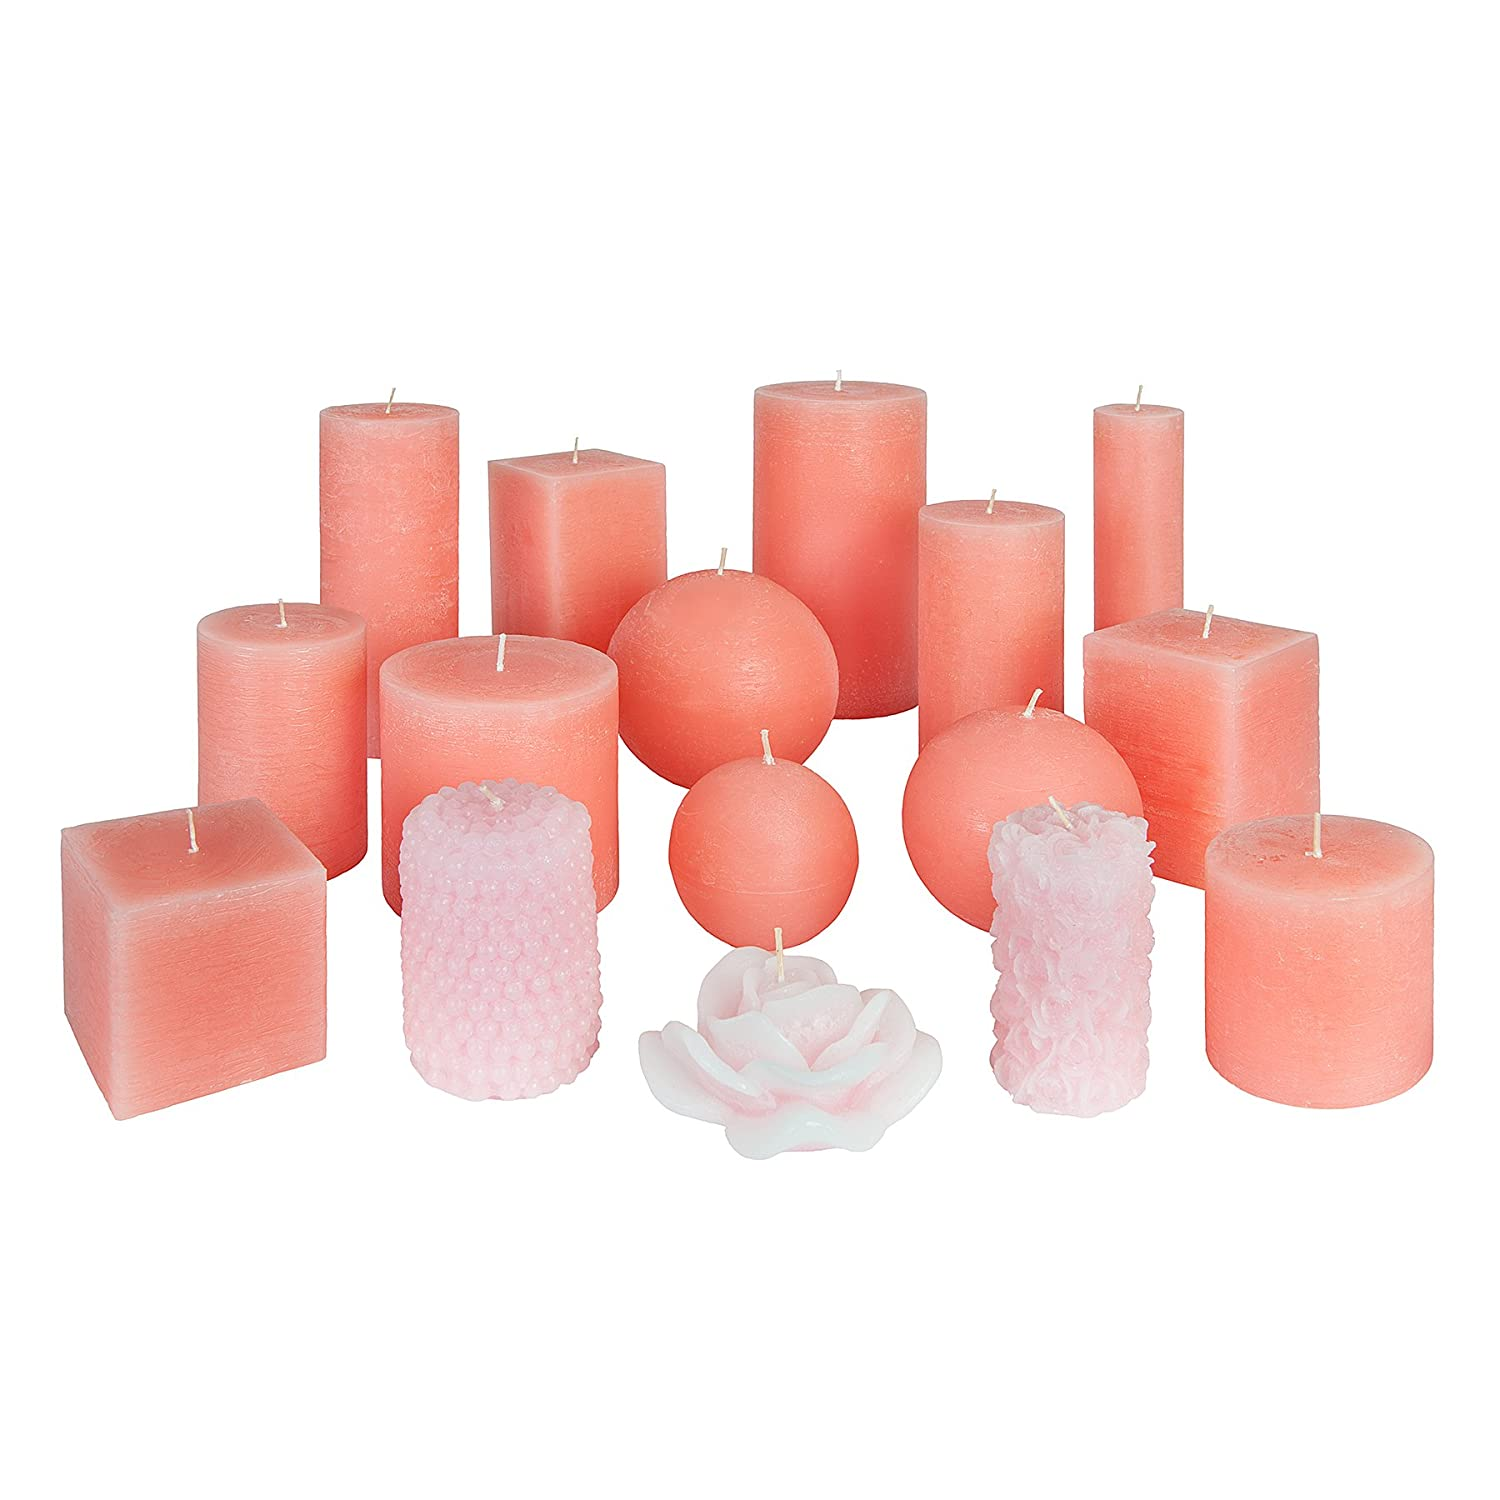 Fragrance-Free Set of 3 Candle Atelier Coral Pink 3 Handmade Round-Shaped Candles